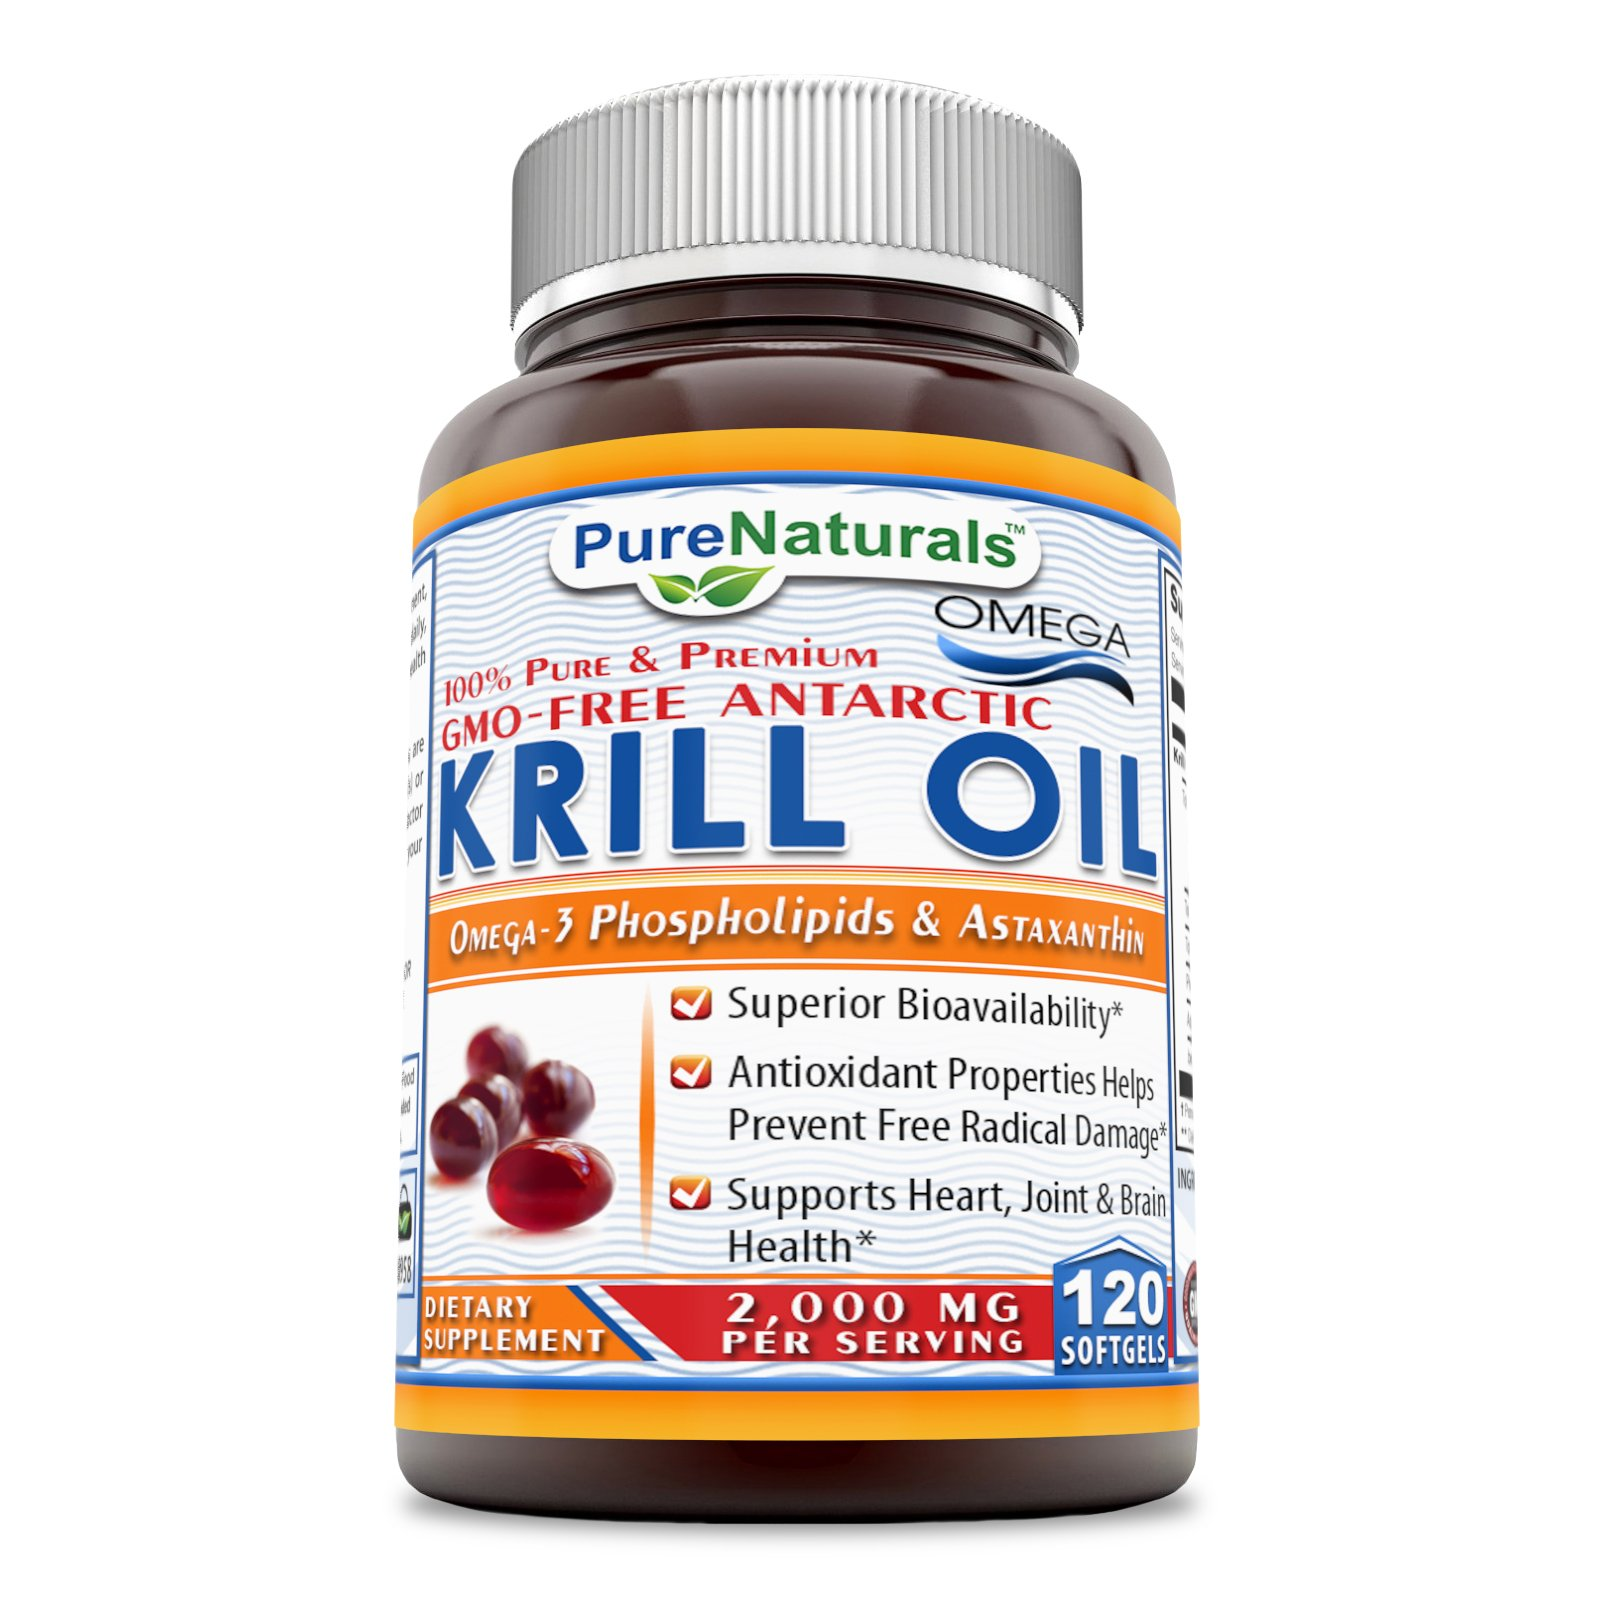 Pure Naturals Krill Oil Dietary Supplement - 2000 mg Per Serving - 240mg Omega 3 Fatty Acids with 120mg EPA & 80mg DHA Per Serving - Support Heart, Joint, Brain Health* (120 Count)